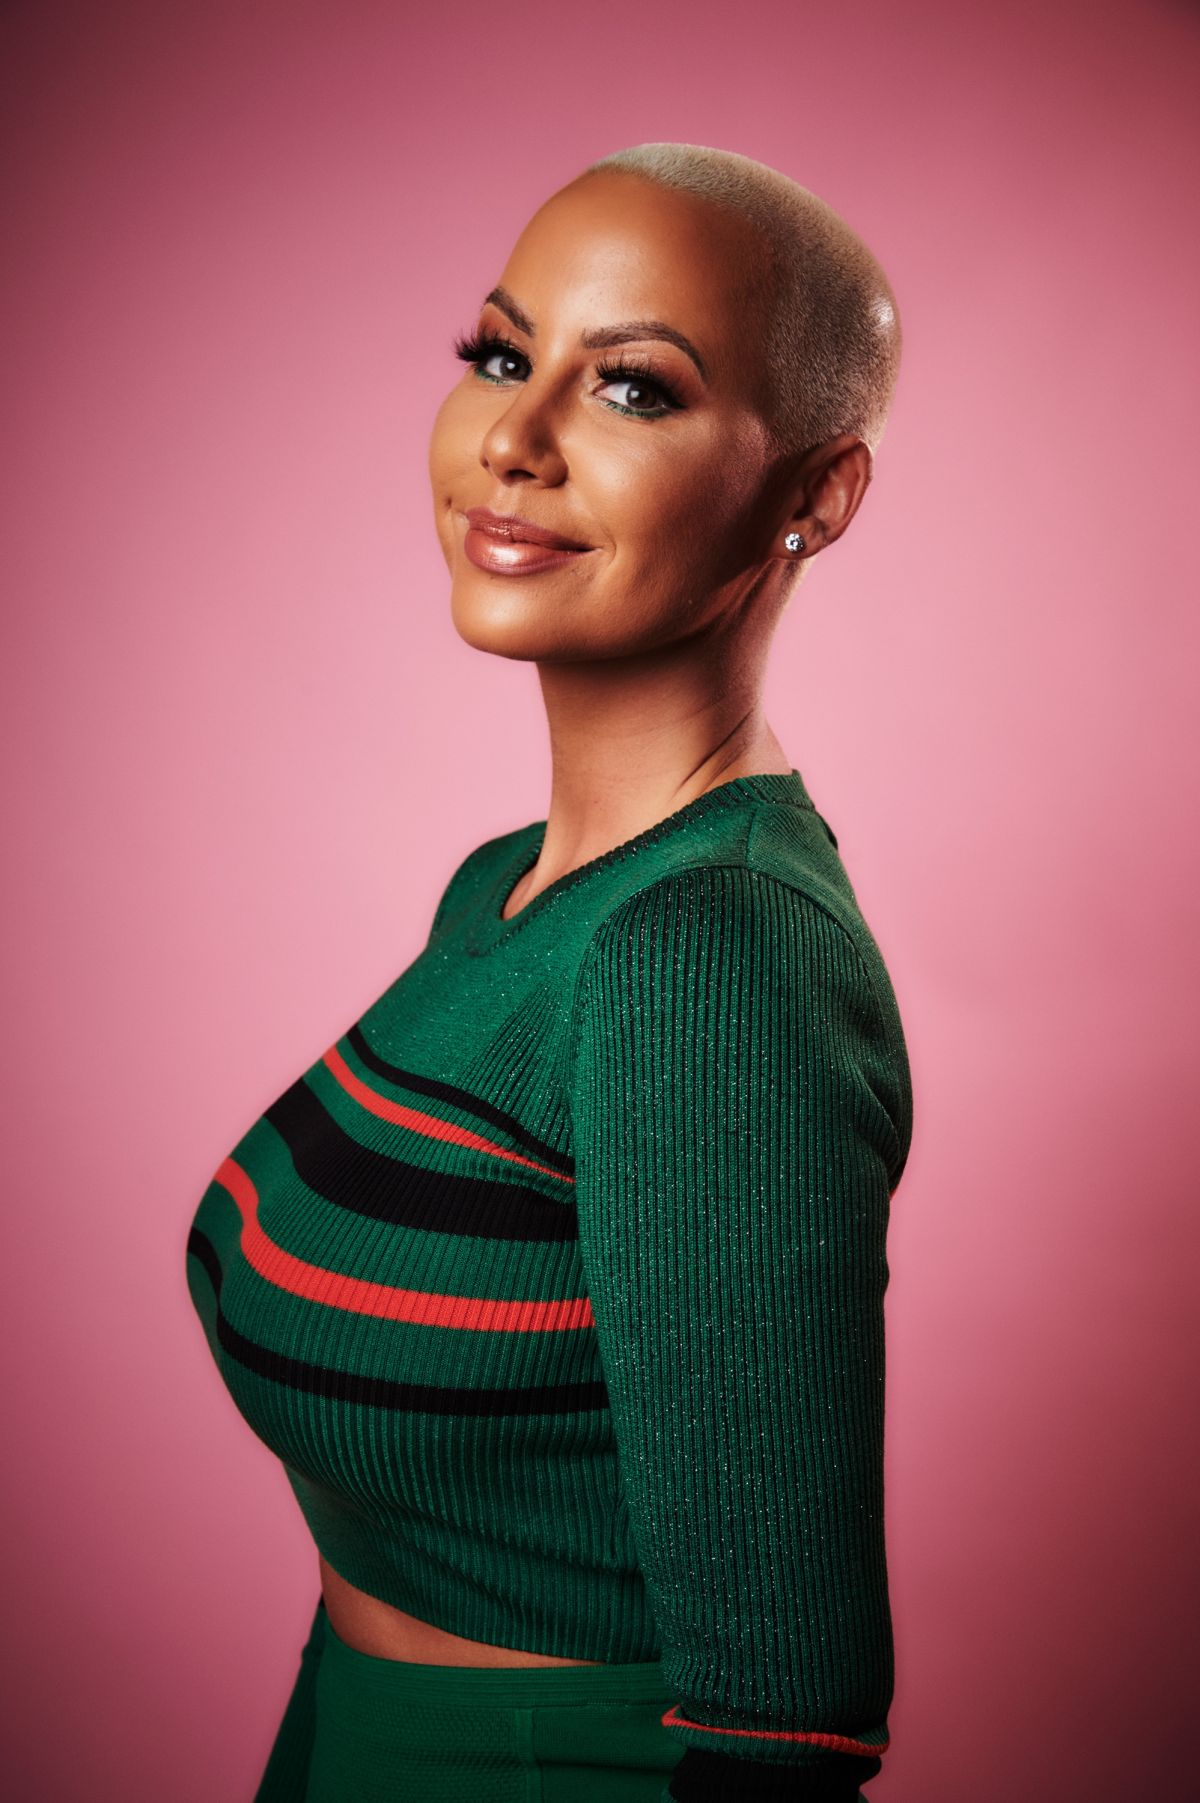 Amber Rose At Variety portrait session 2017 - Celebzz ...